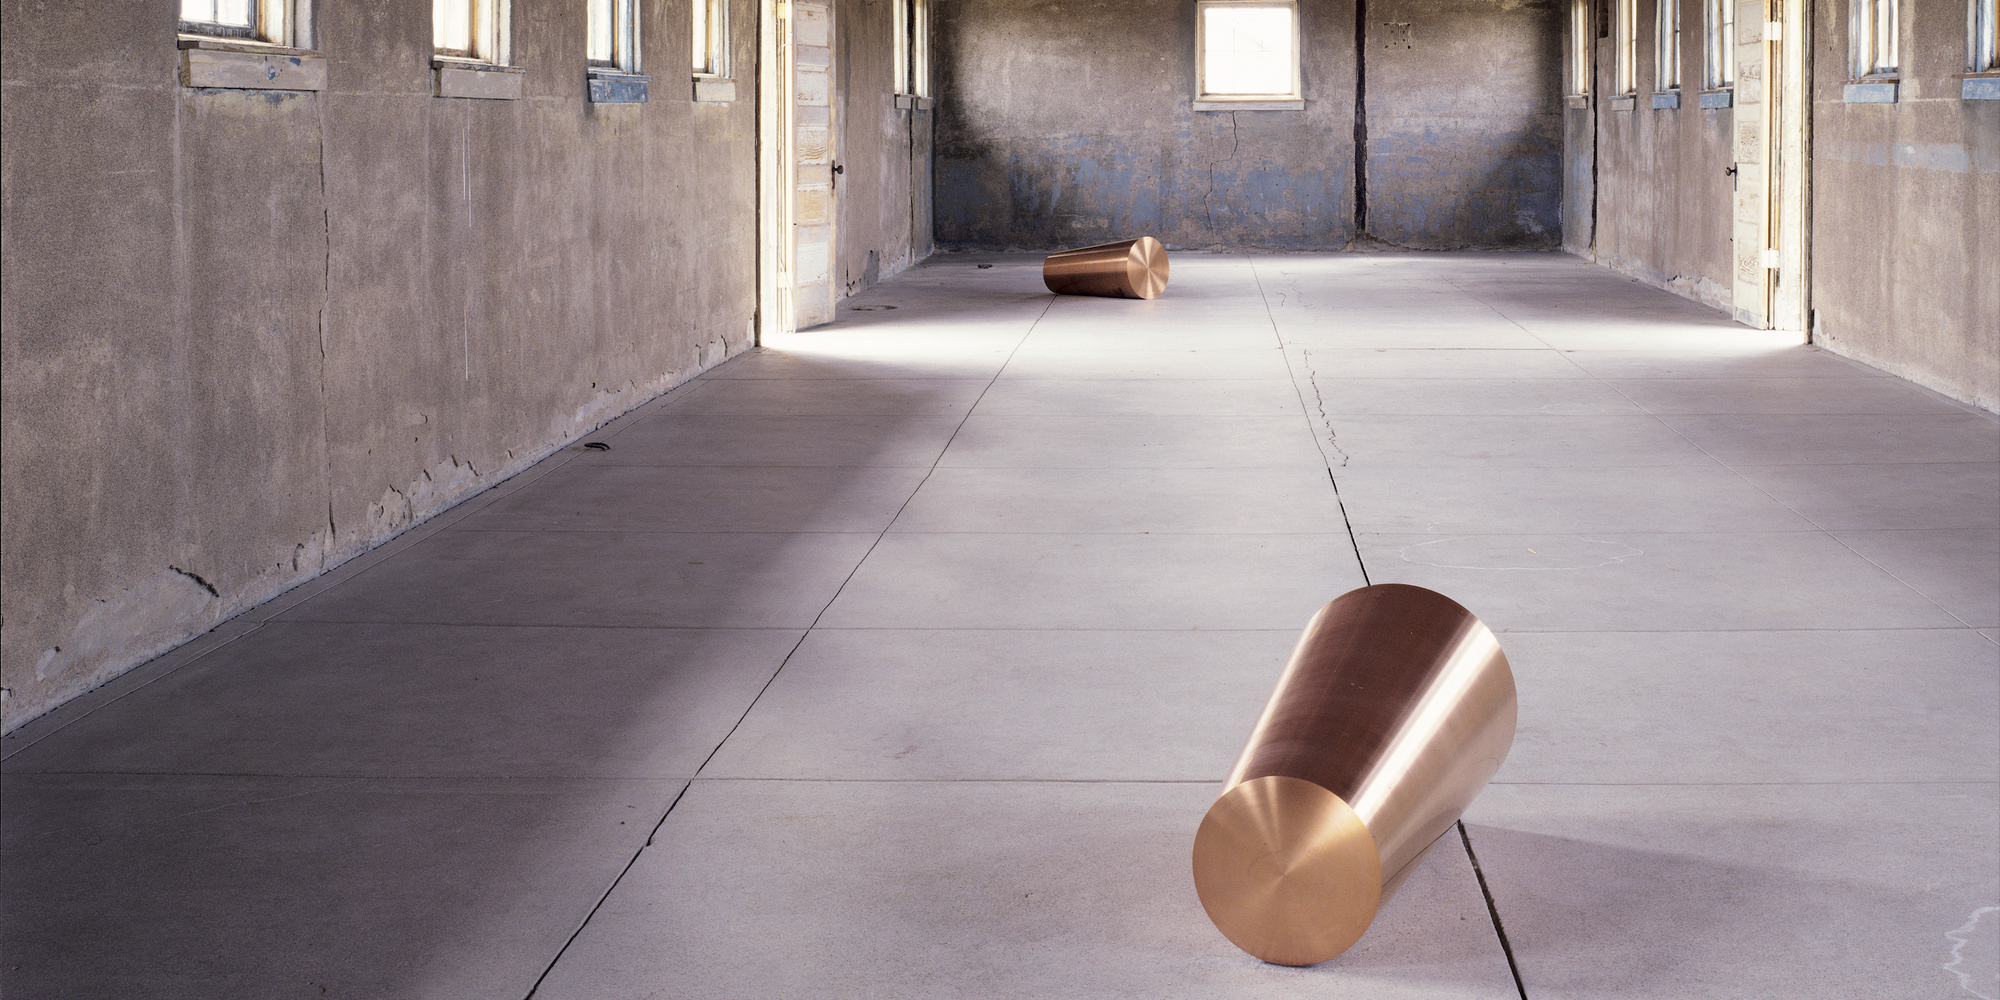 Roni Horn. Things That Happen Again, Pair Object VII (For a Here and a There). 1986–88. On long-term loan from Judd Foundation. The Chinati Foundation, Marfa, Texas. Photo: Florian Holzherr. Courtesy the Chinati Foundation. ©️ 2020 Roni Horn, New York